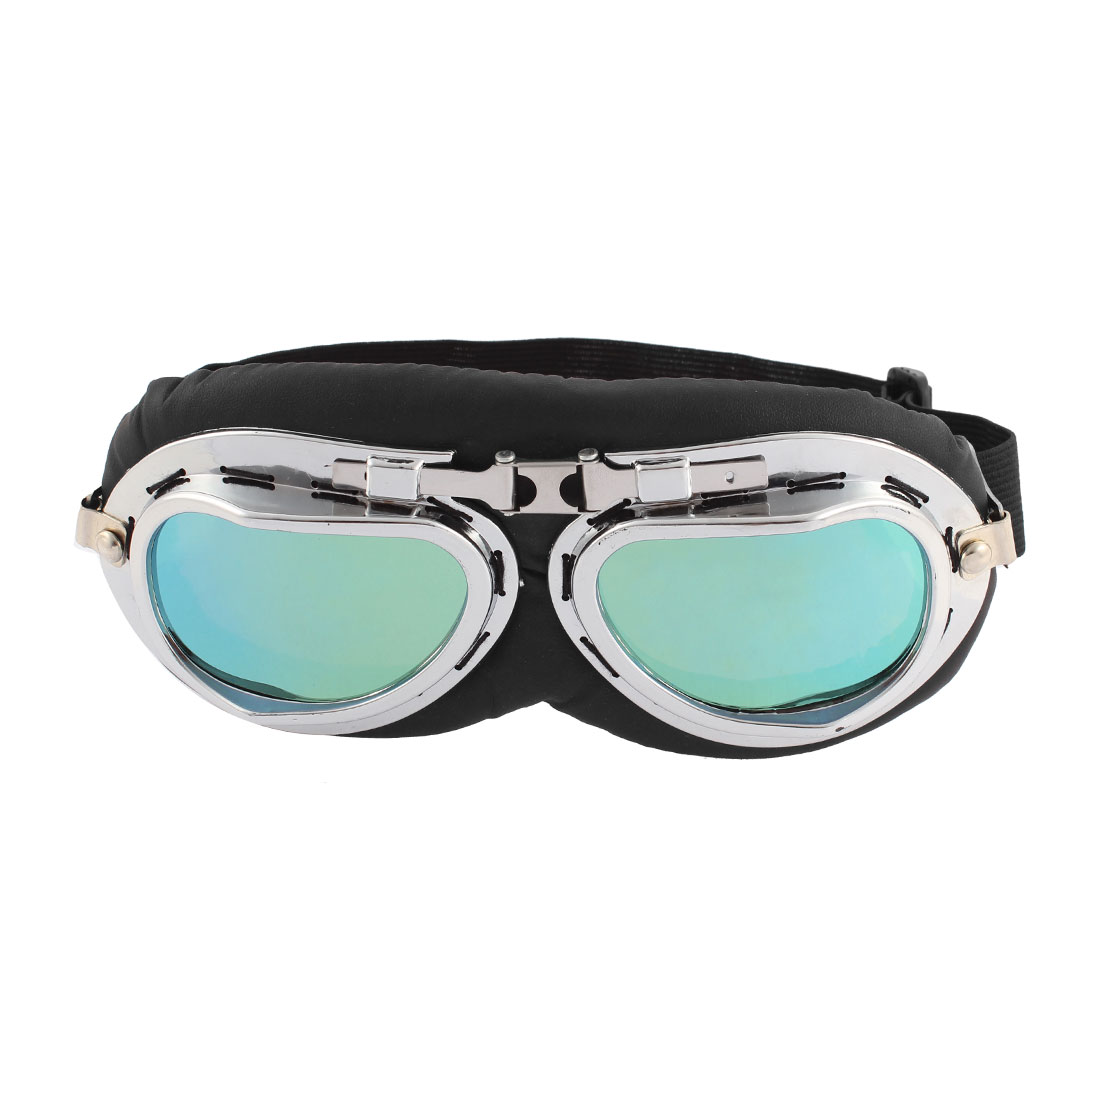 Motorcycle Bycicle Driving Full Frame Protective Goggles Glasses Sunglasses